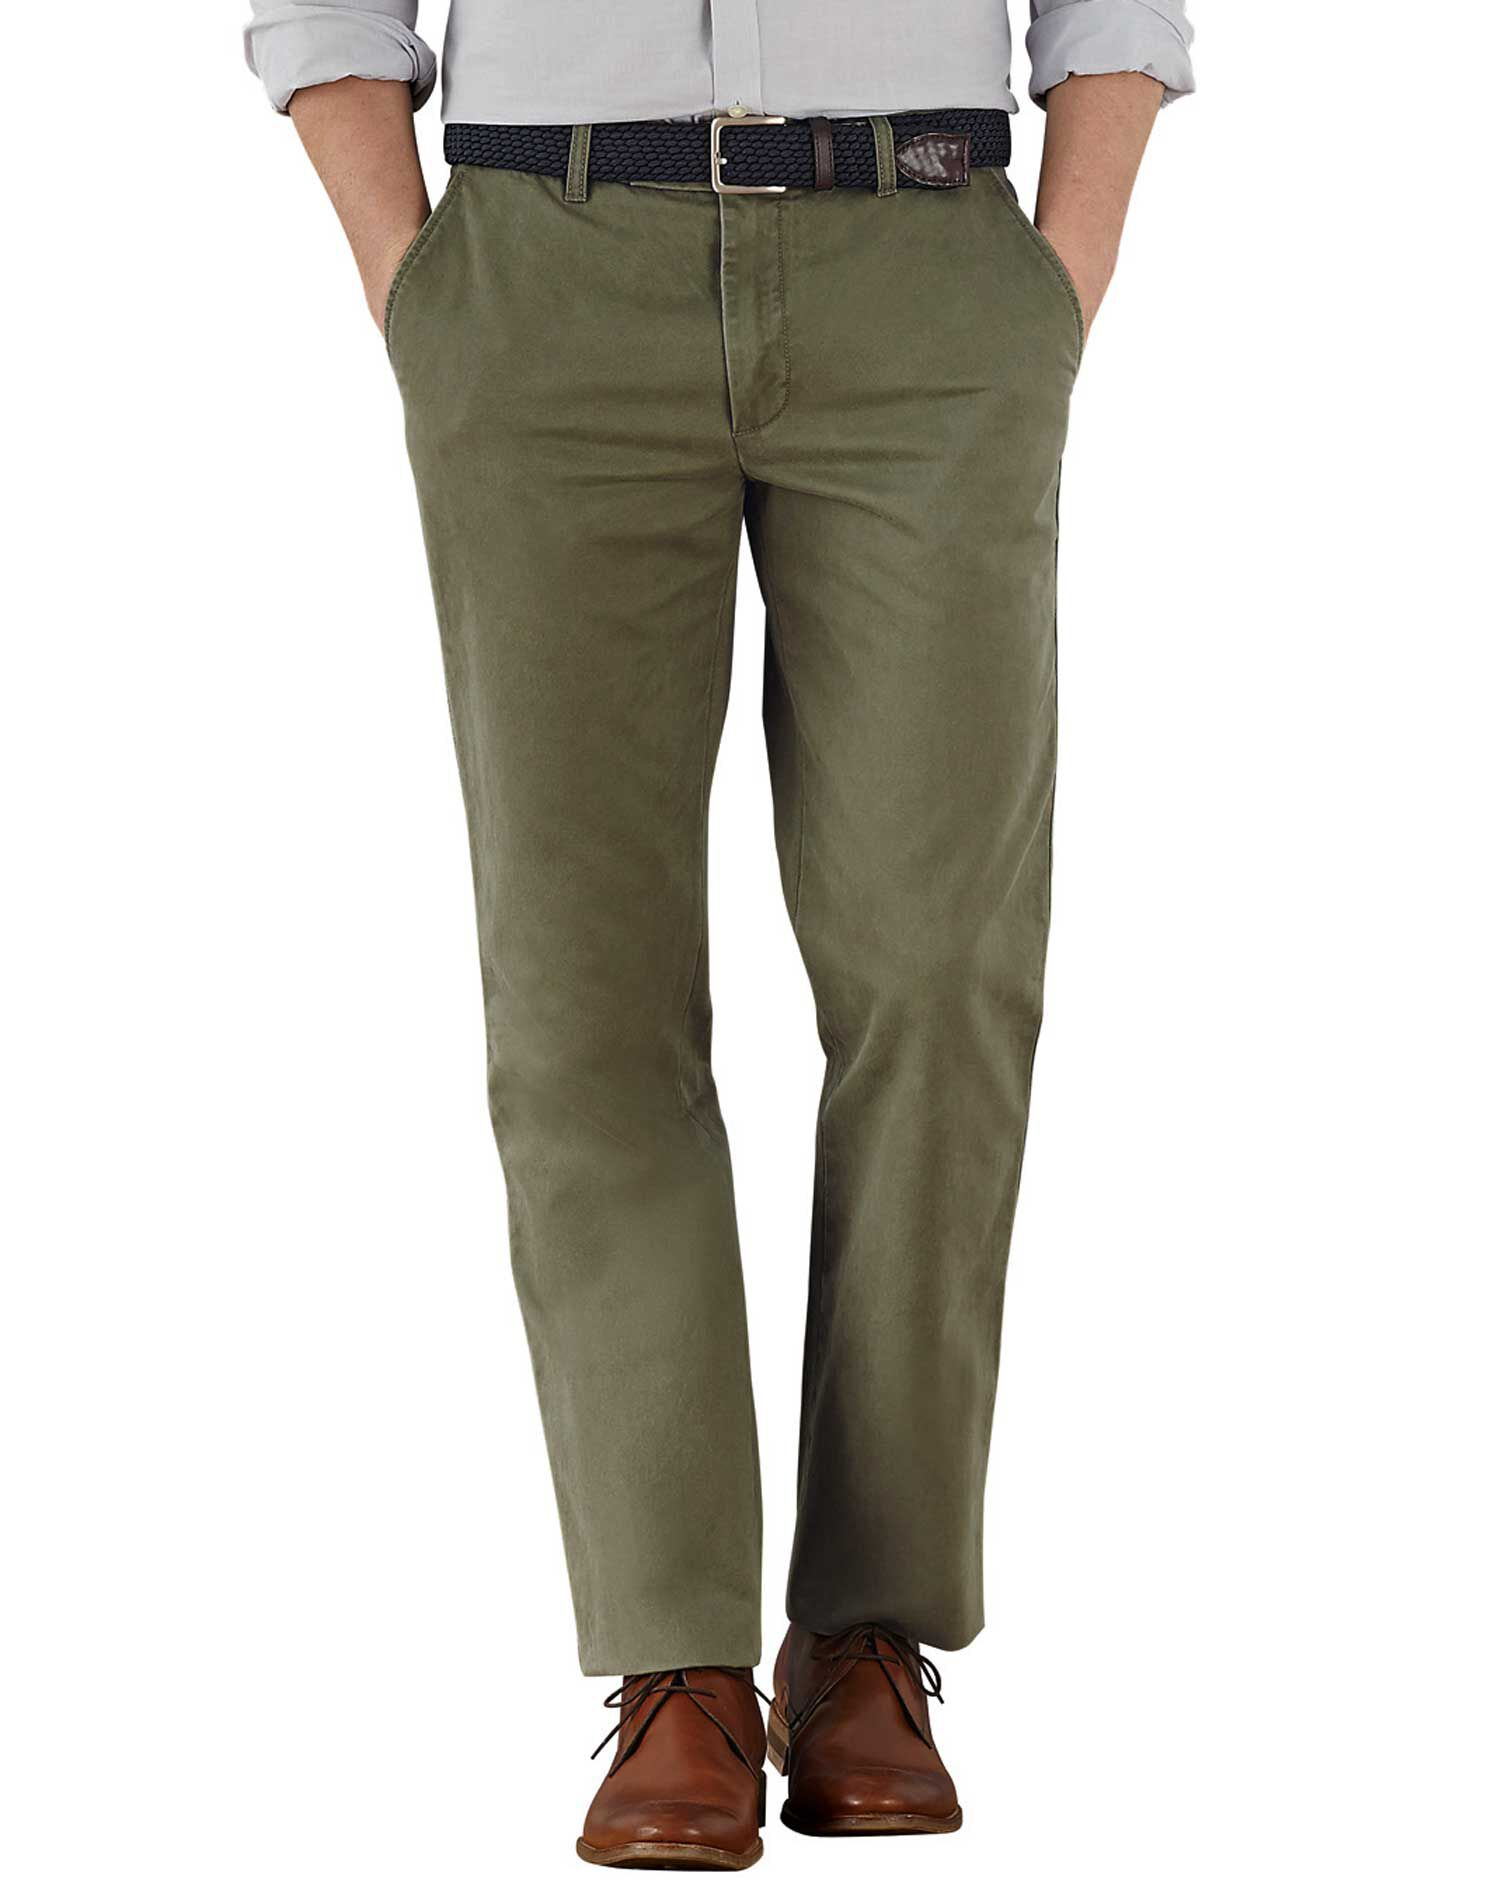 Olive Slim Fit Flat Front Cotton Chino Trousers Size W36 L32 by Charles Tyrwhitt